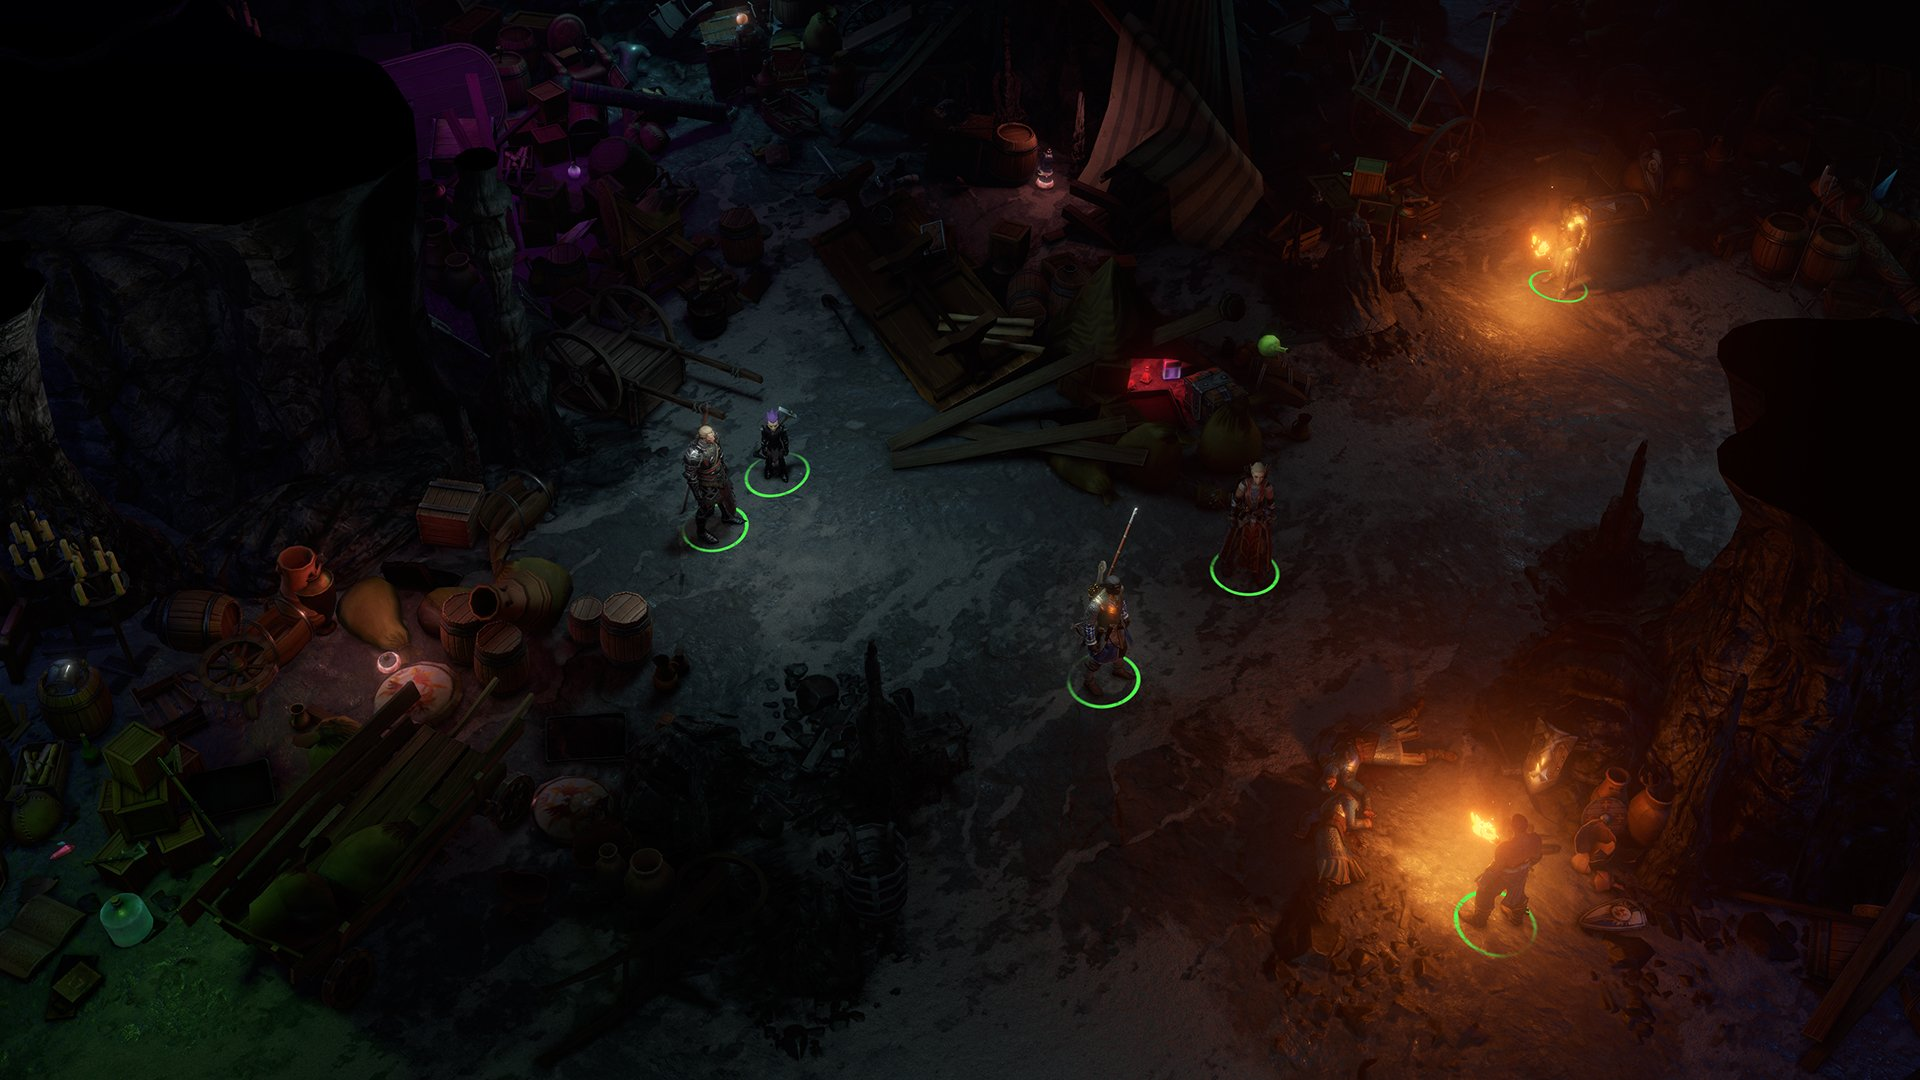 Pathfinder: Wrath of the Righteous is the upcoming sequel to Pathfinder: Kingmaker